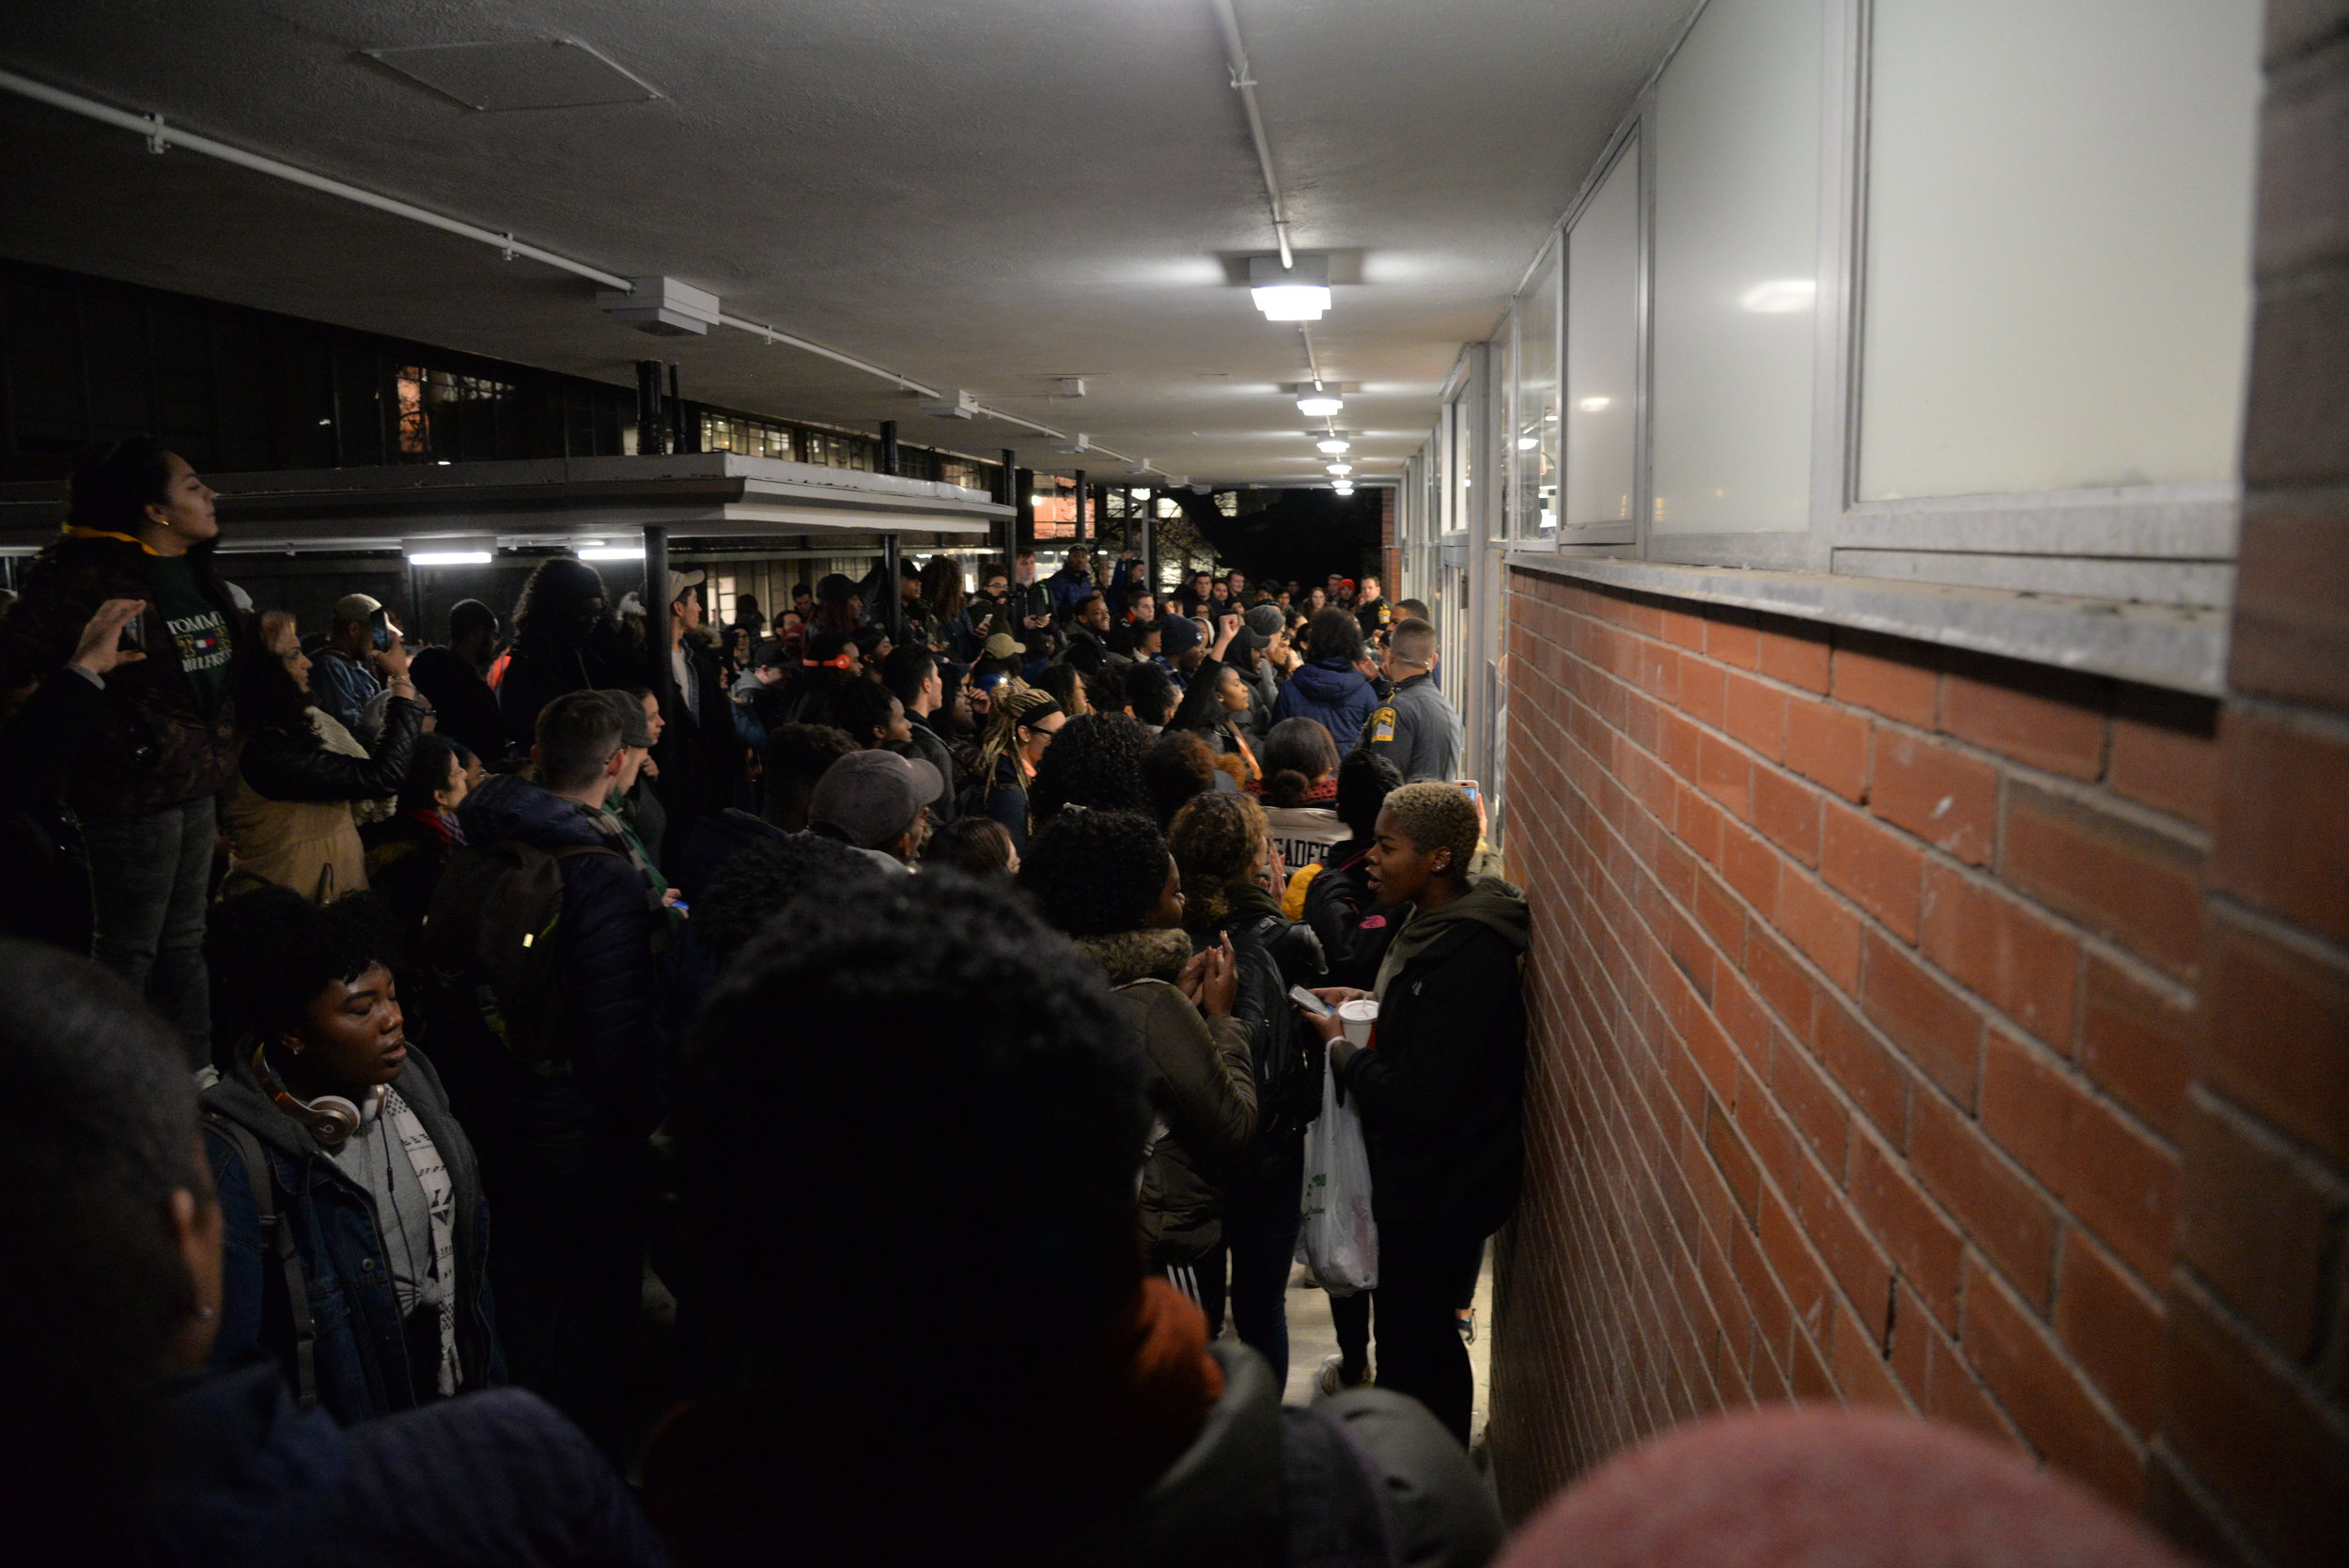 The event was officially canceled once the altercation took place, but that didn't stop the masses of people from gathering outside Schenker Hall. There were also reports of a smoke bomb going off inside the building. (Amar Batra/The Daily Campus)